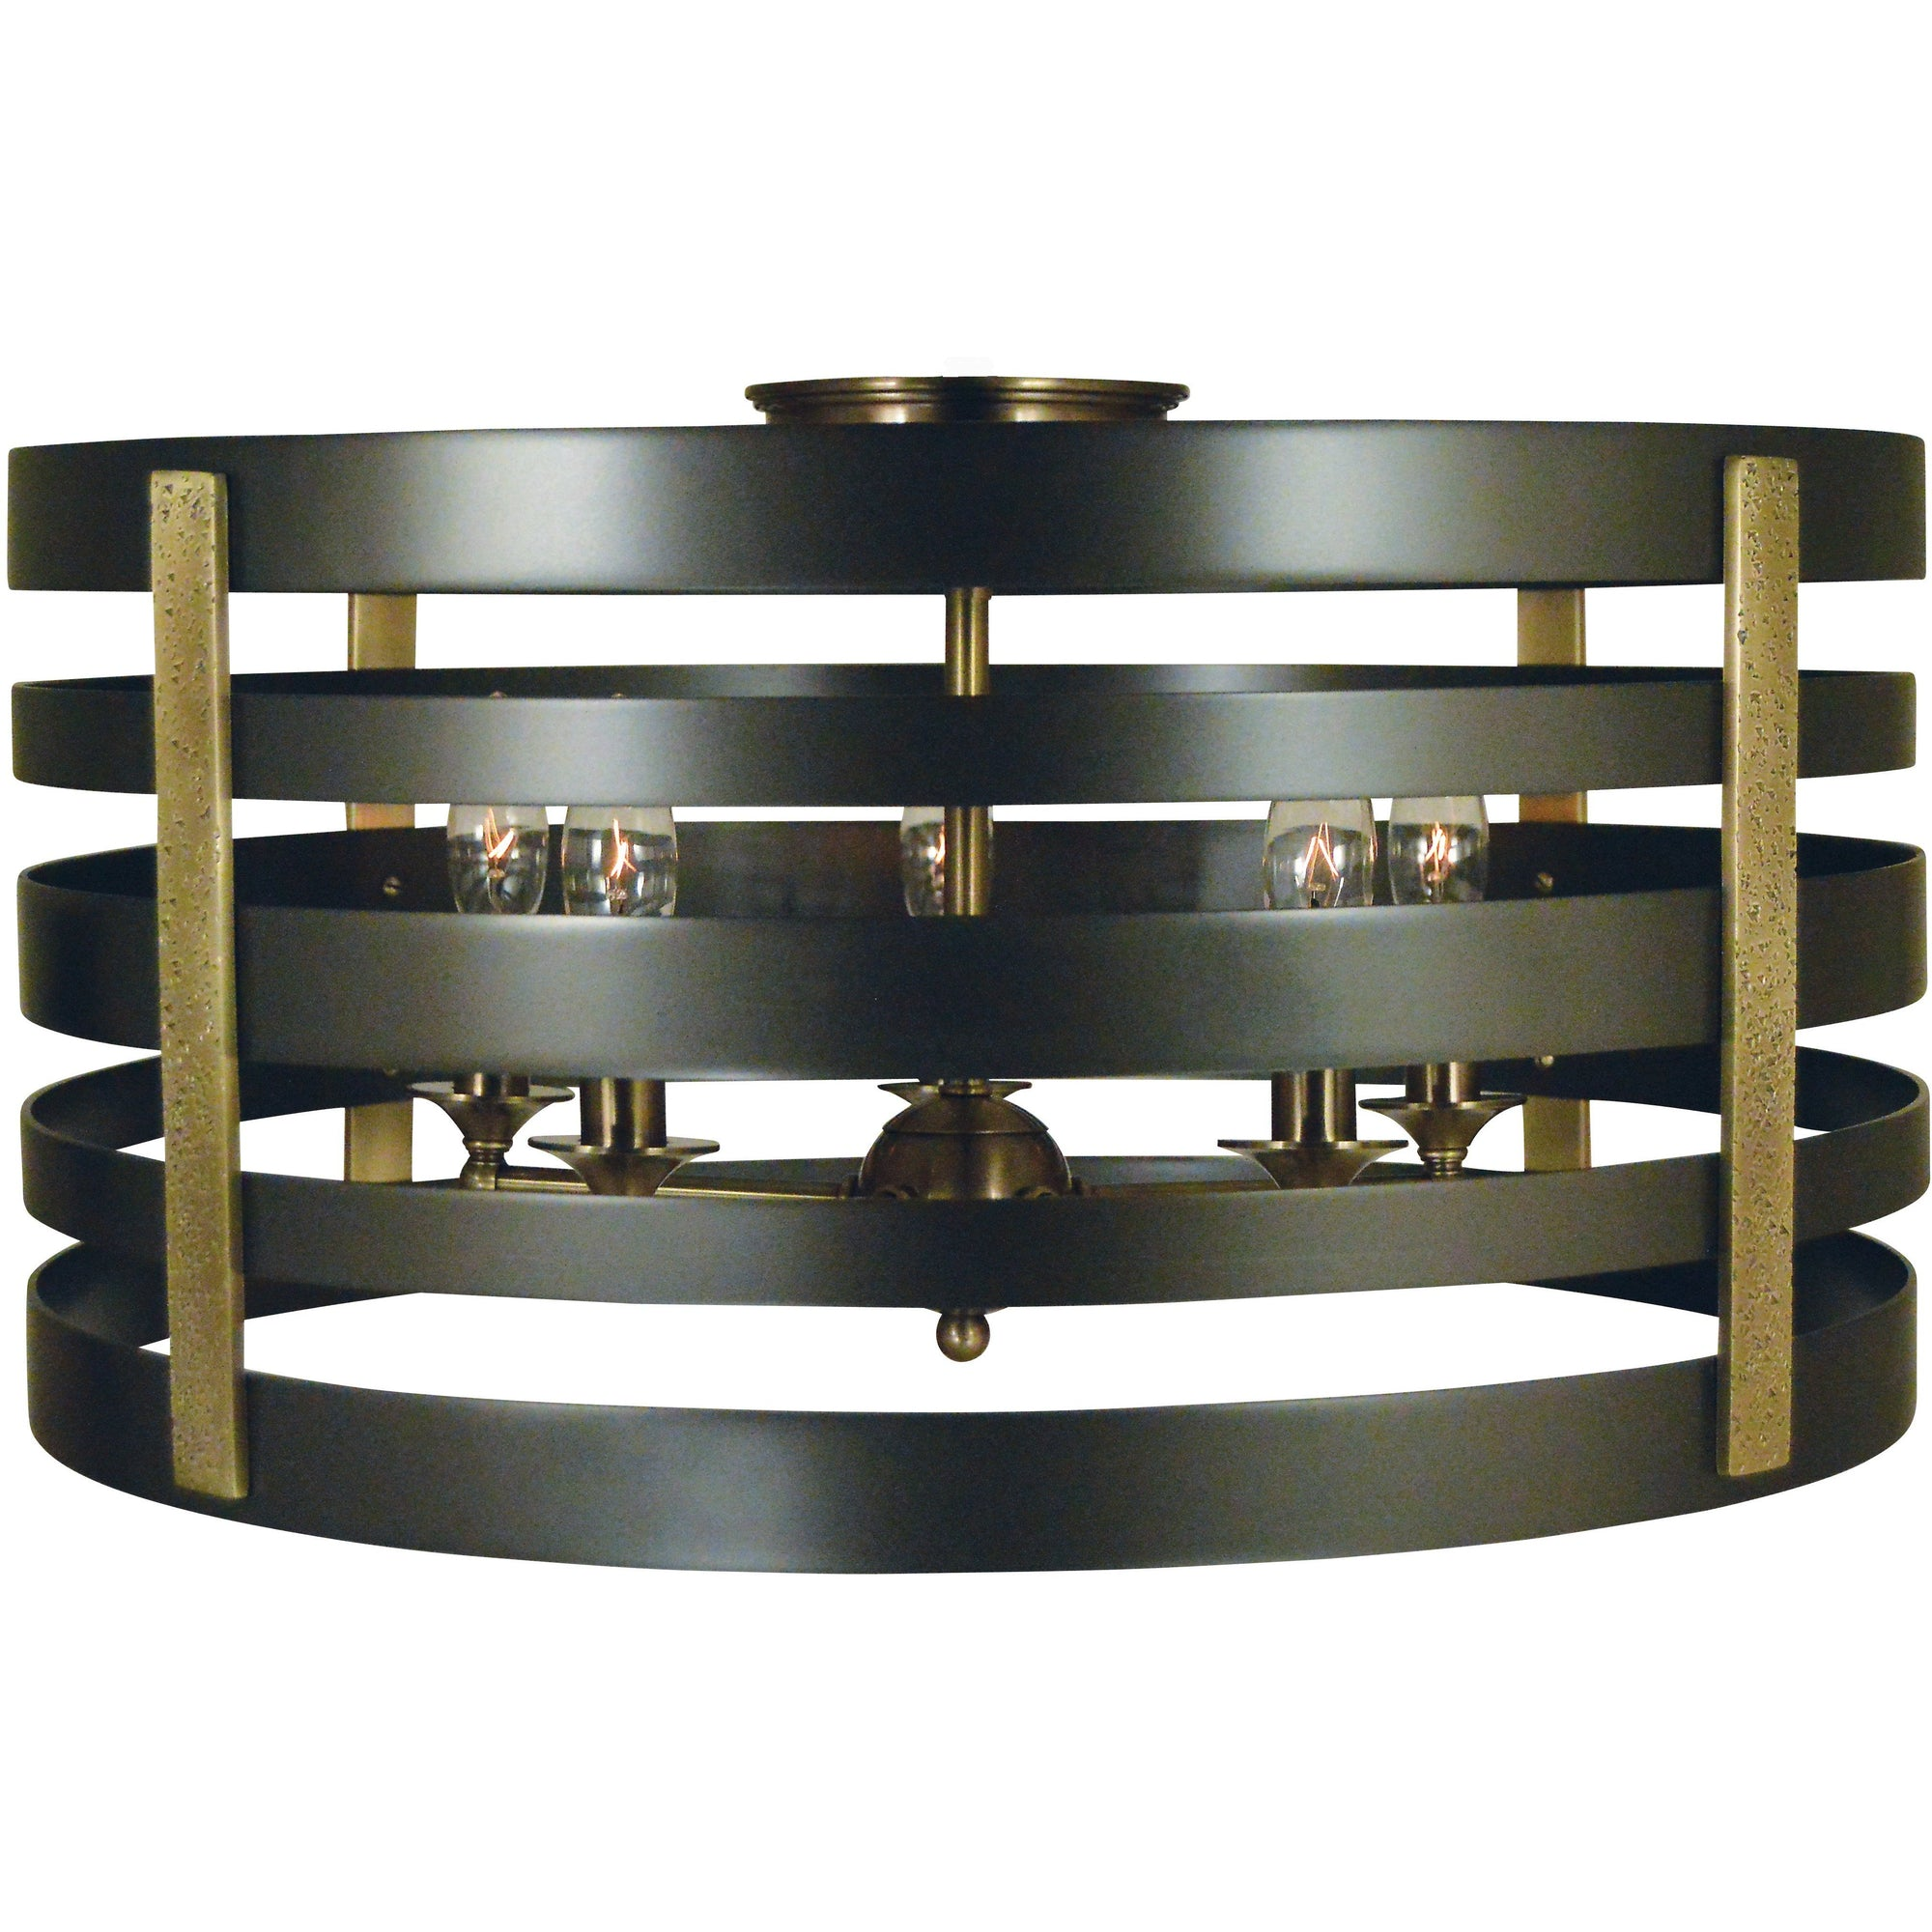 Framburg Flush/Semi Flush Mounts Mahogany Bronze with Antique Brass Accents 5-Light Pastoral Flush Mount/Semi Flush Mount by Framburg 5092